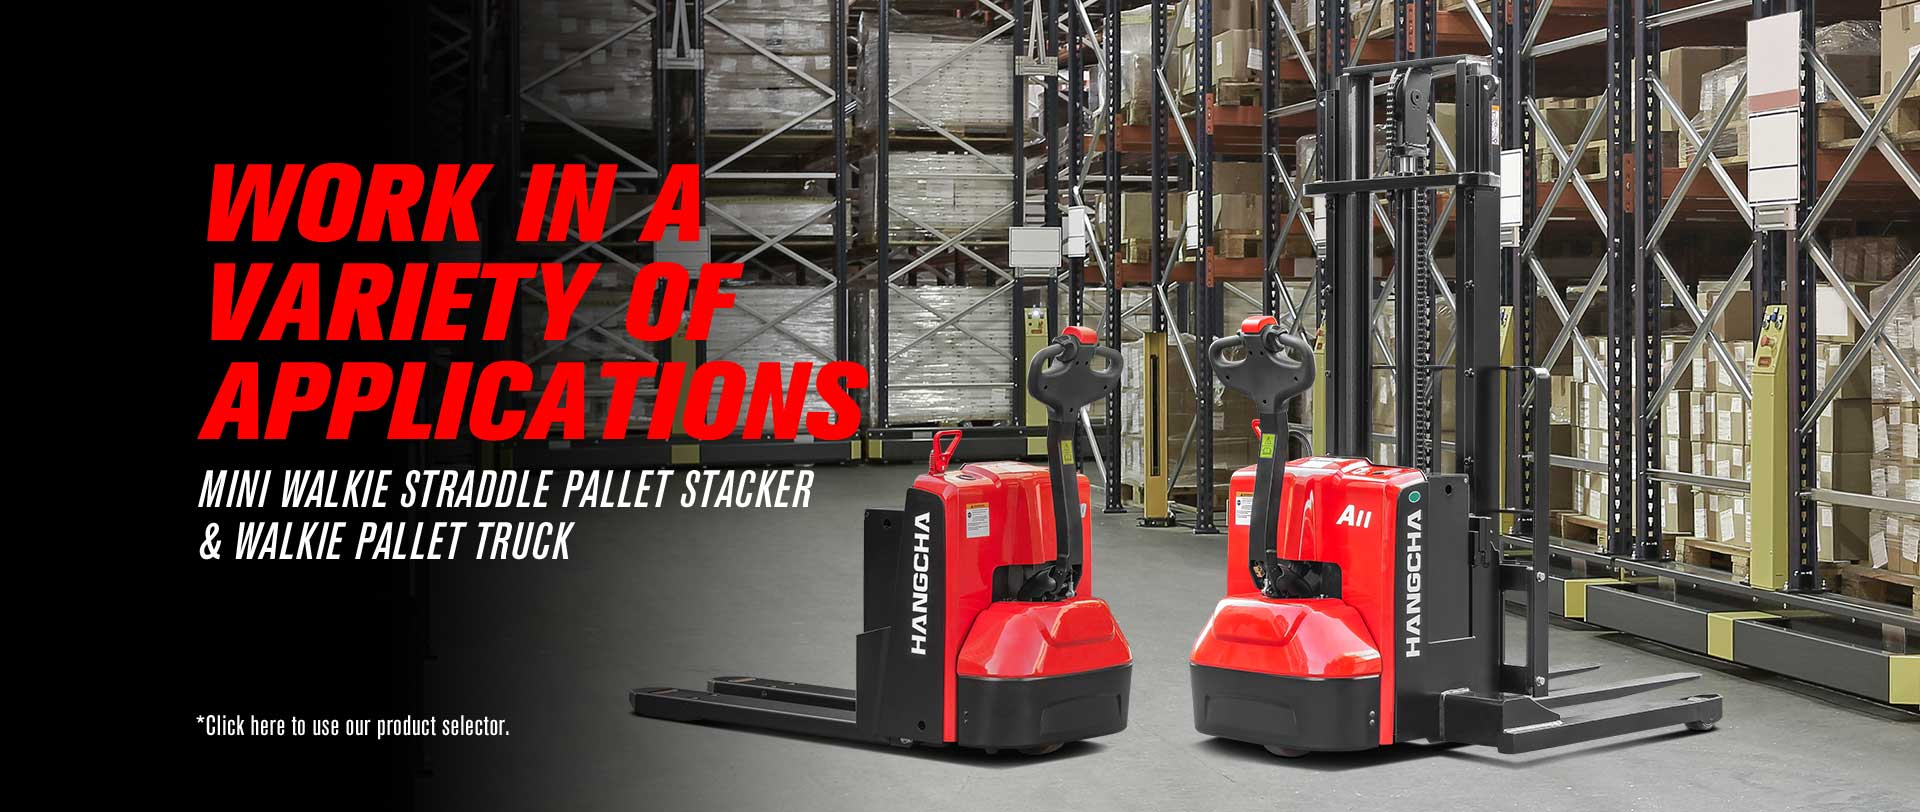 Walkie Pallet Truck&Pallet Stacker